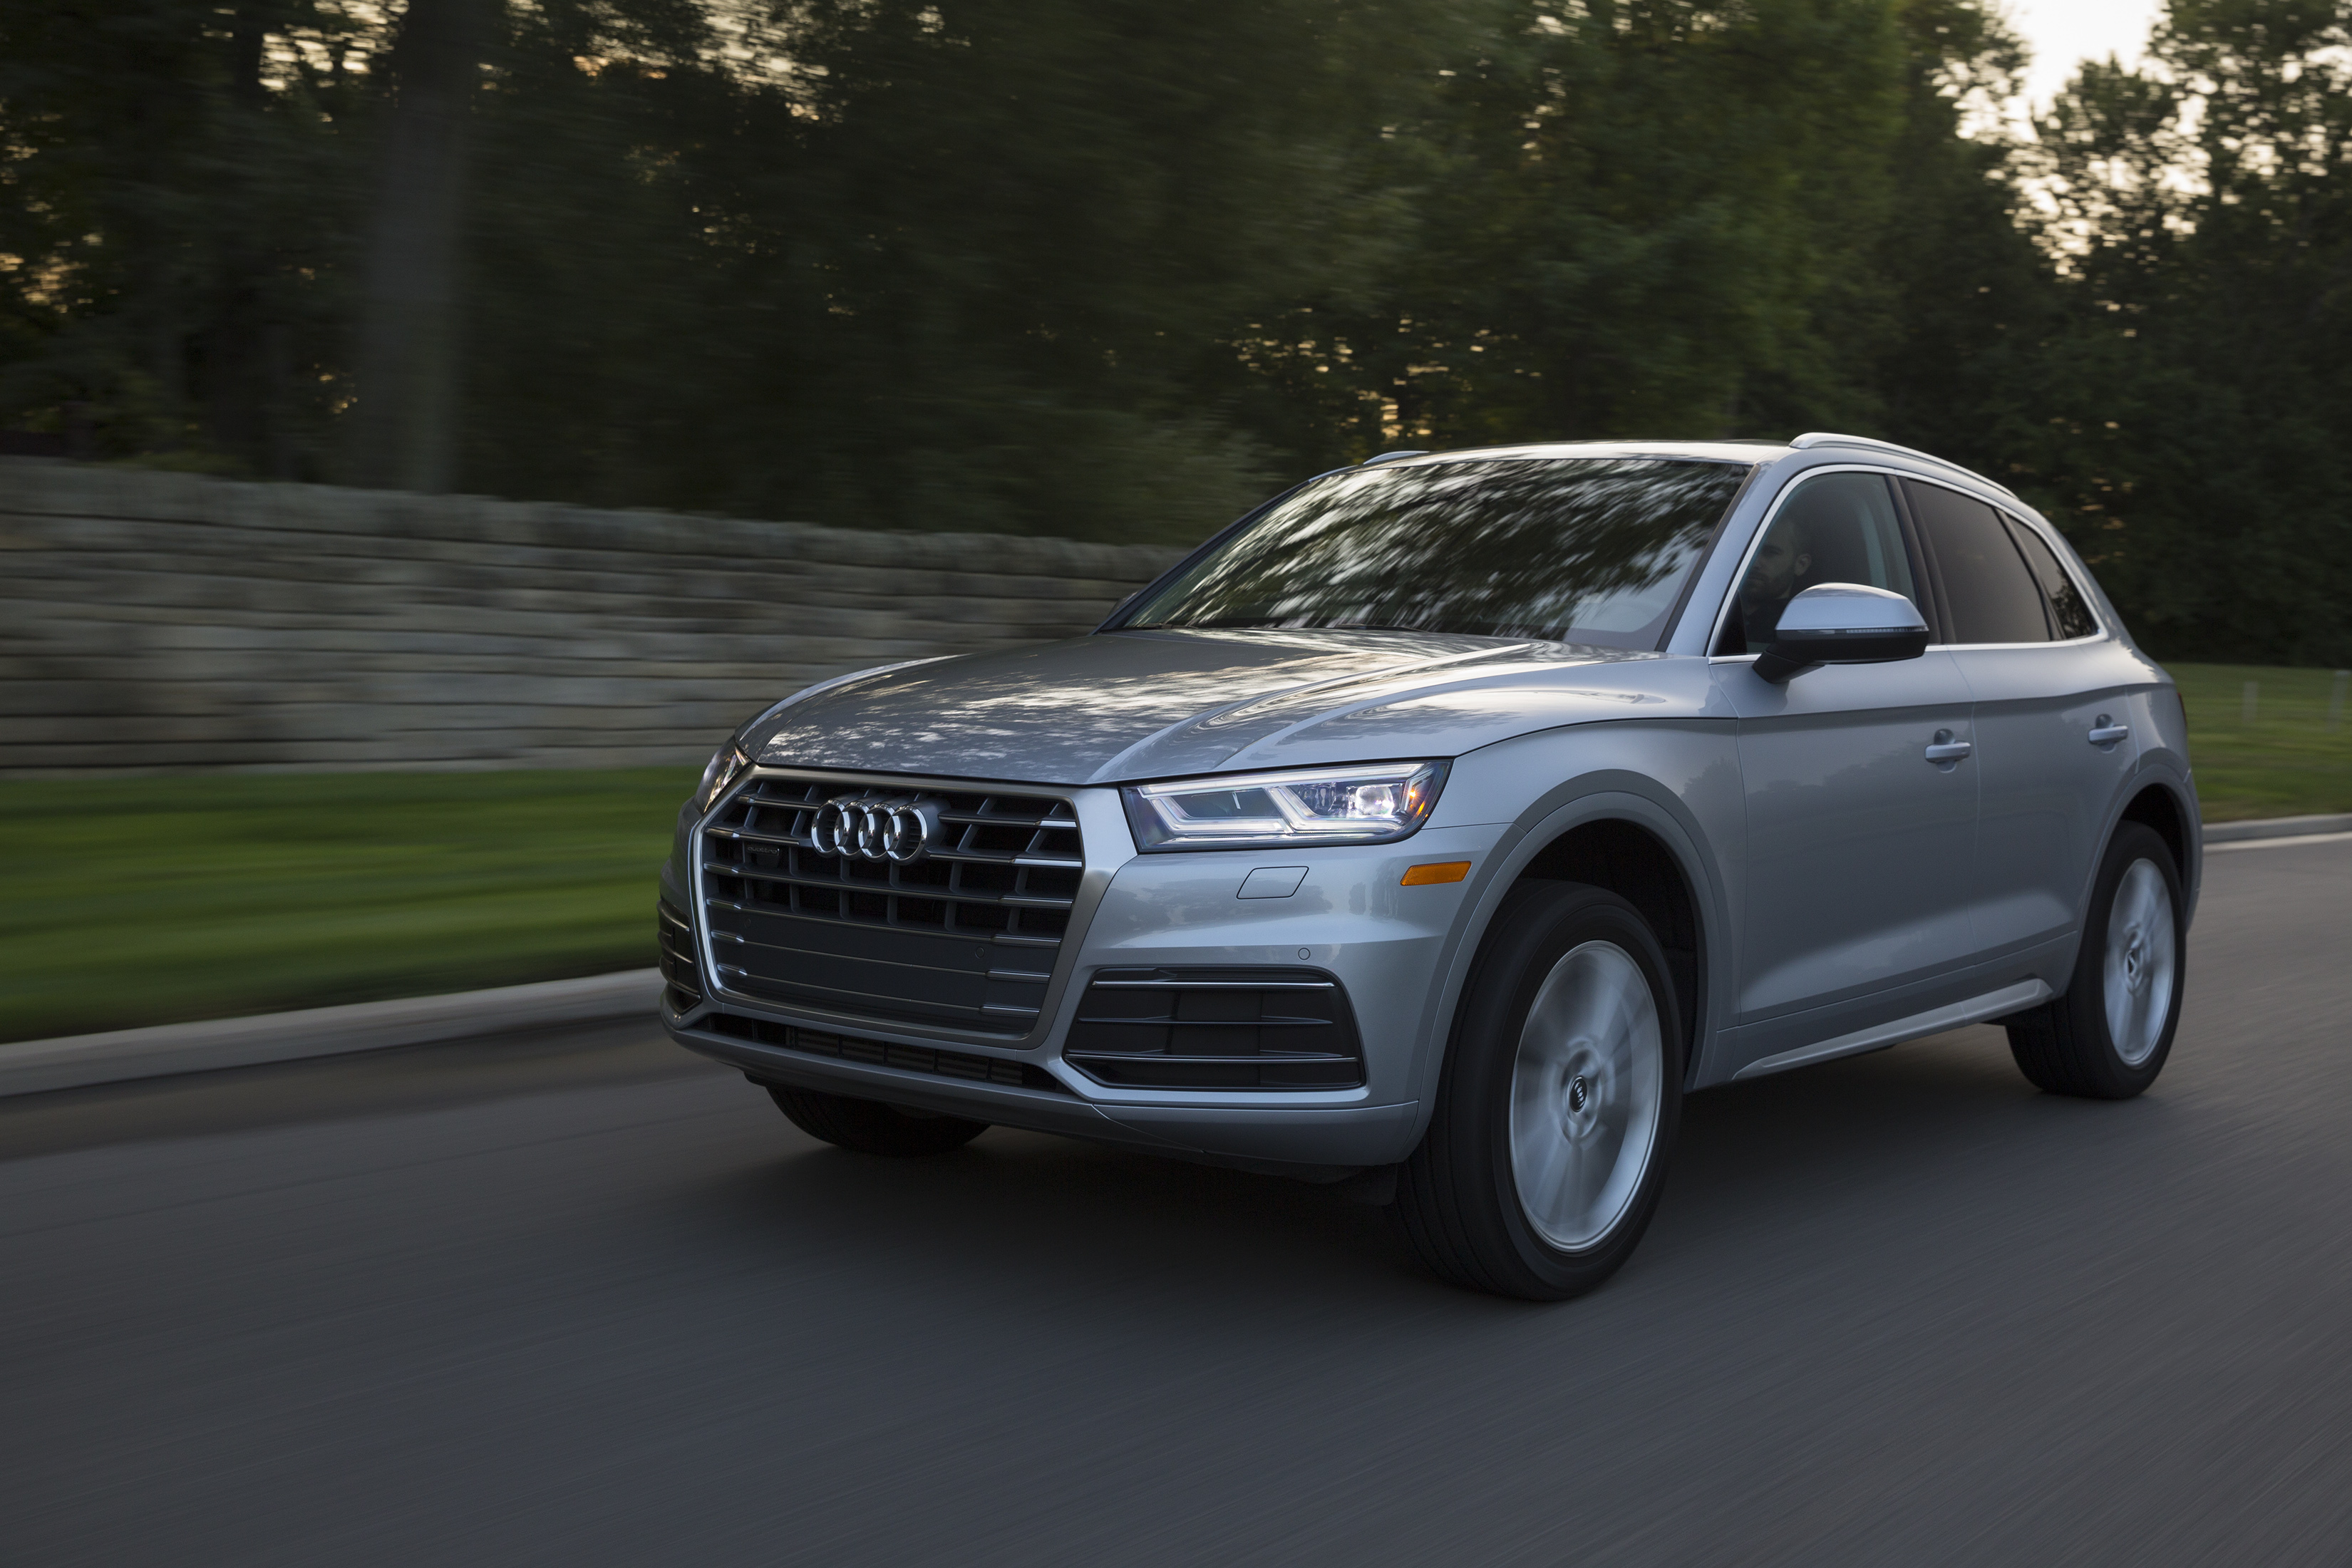 Edmunds compares the Audi Q5 and BMW X3